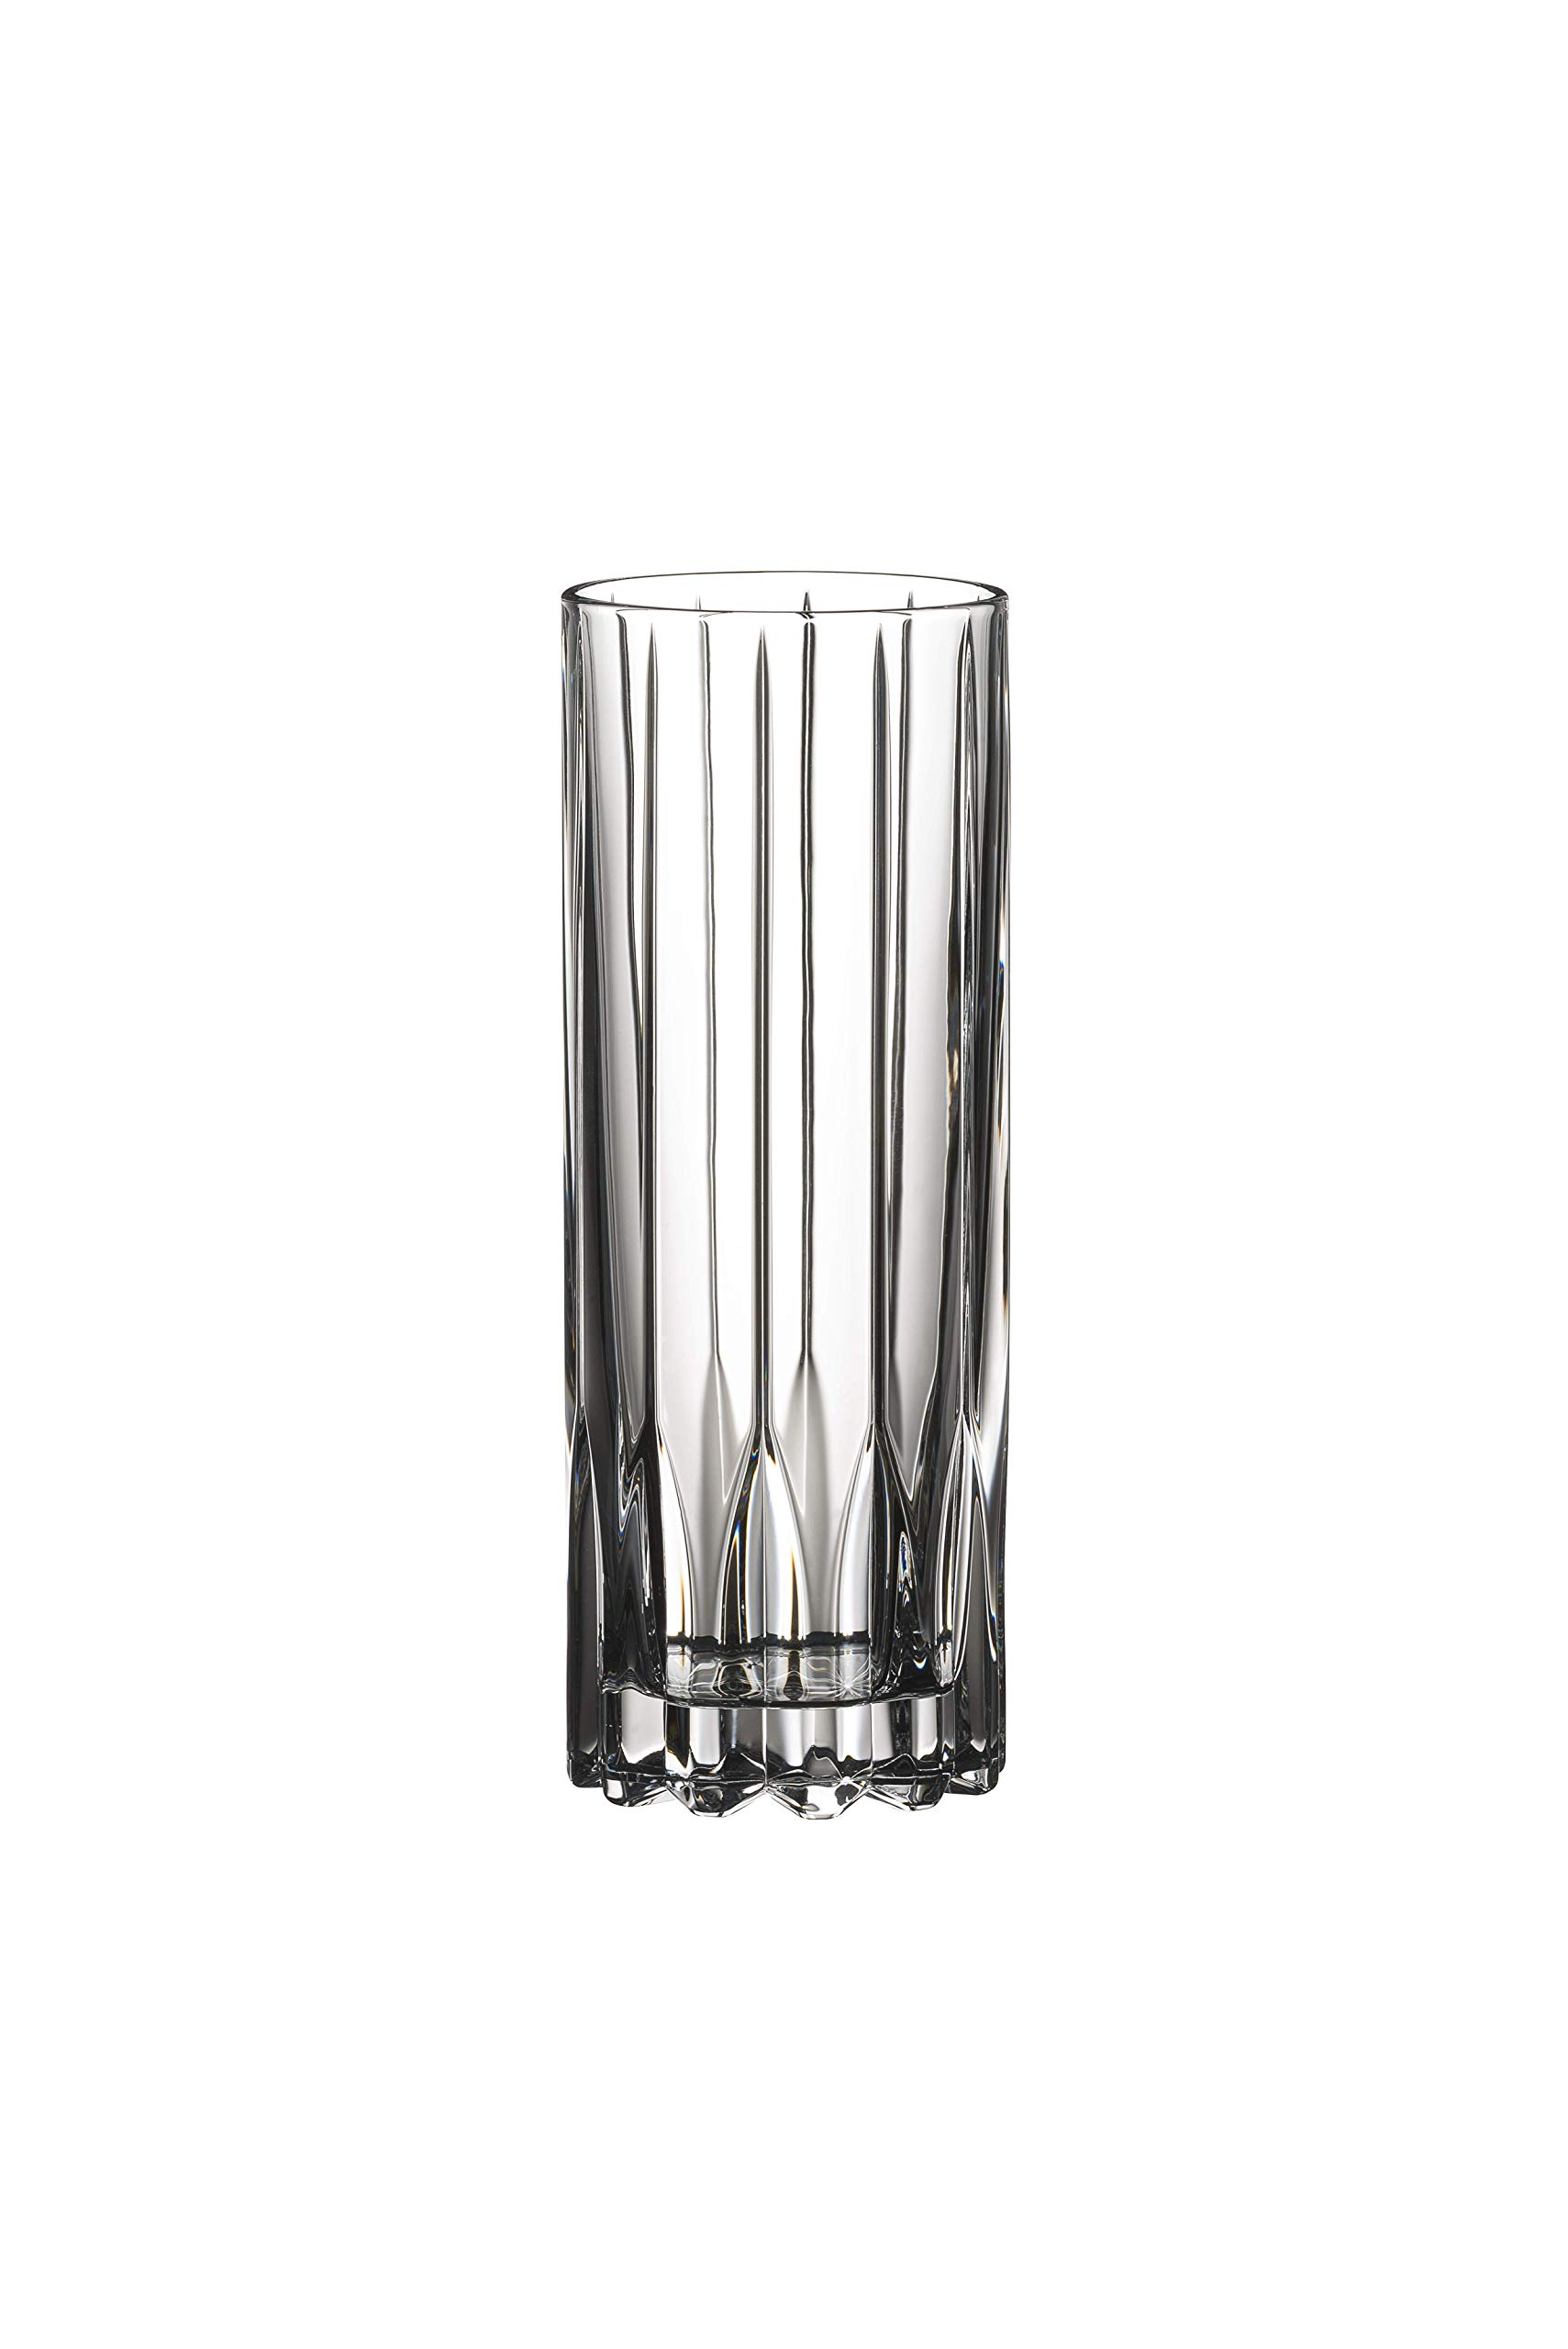 Riedel Drink Specific Glassware Fizz Cocktail Glass, 9 oz, Clear